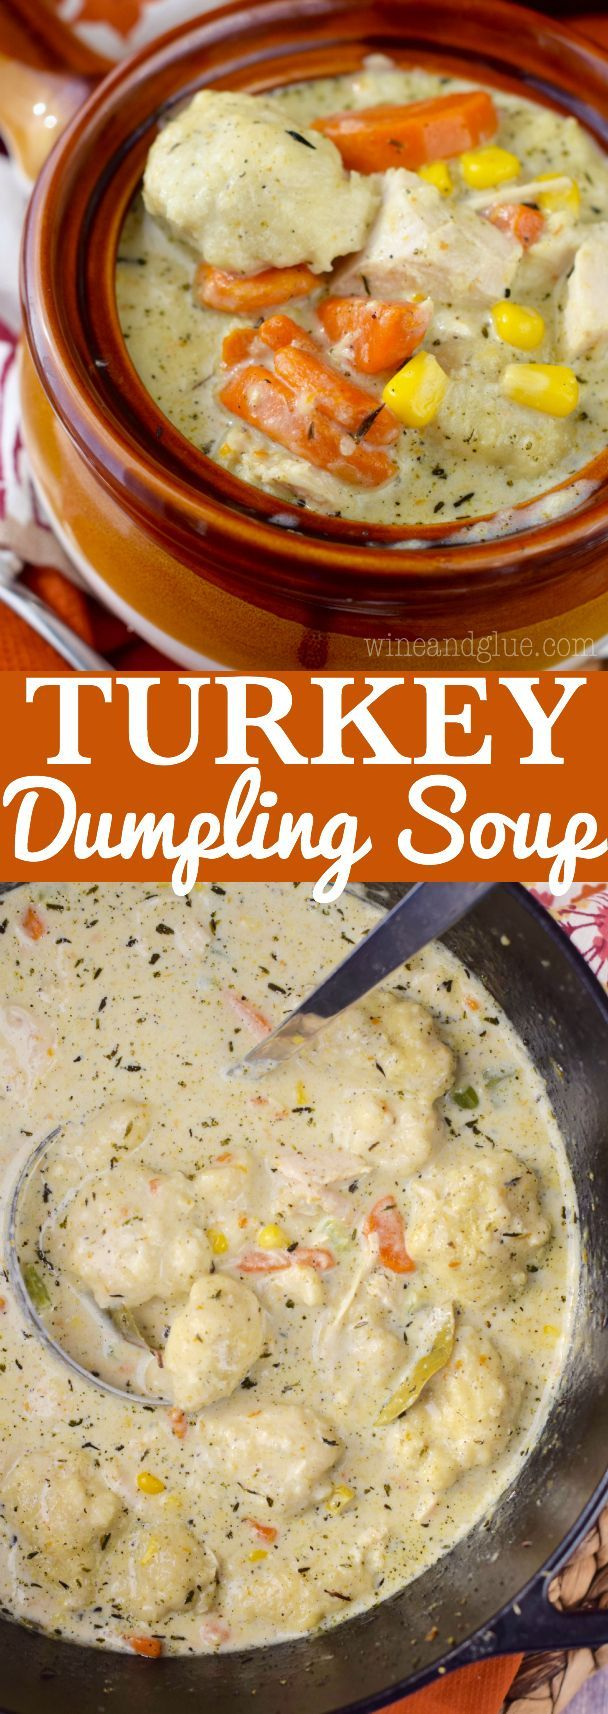 This Turkey Dumpling Soup is the most amazing comfort food! Easy enough for a weeknight meal, good enough for guests!